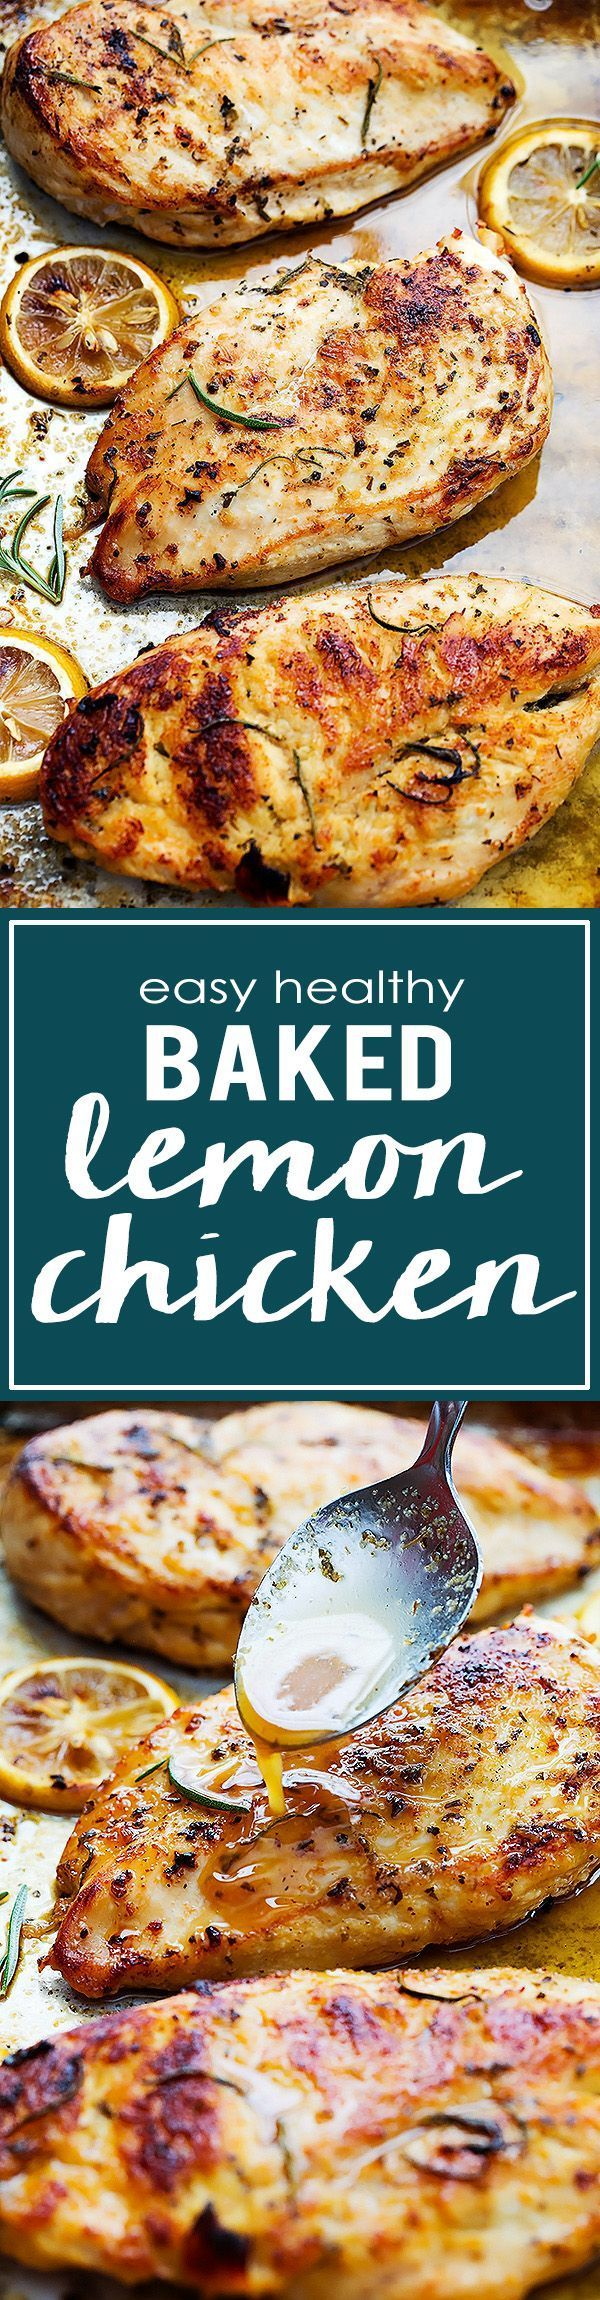 Baked chicken breast recipes easy lemon